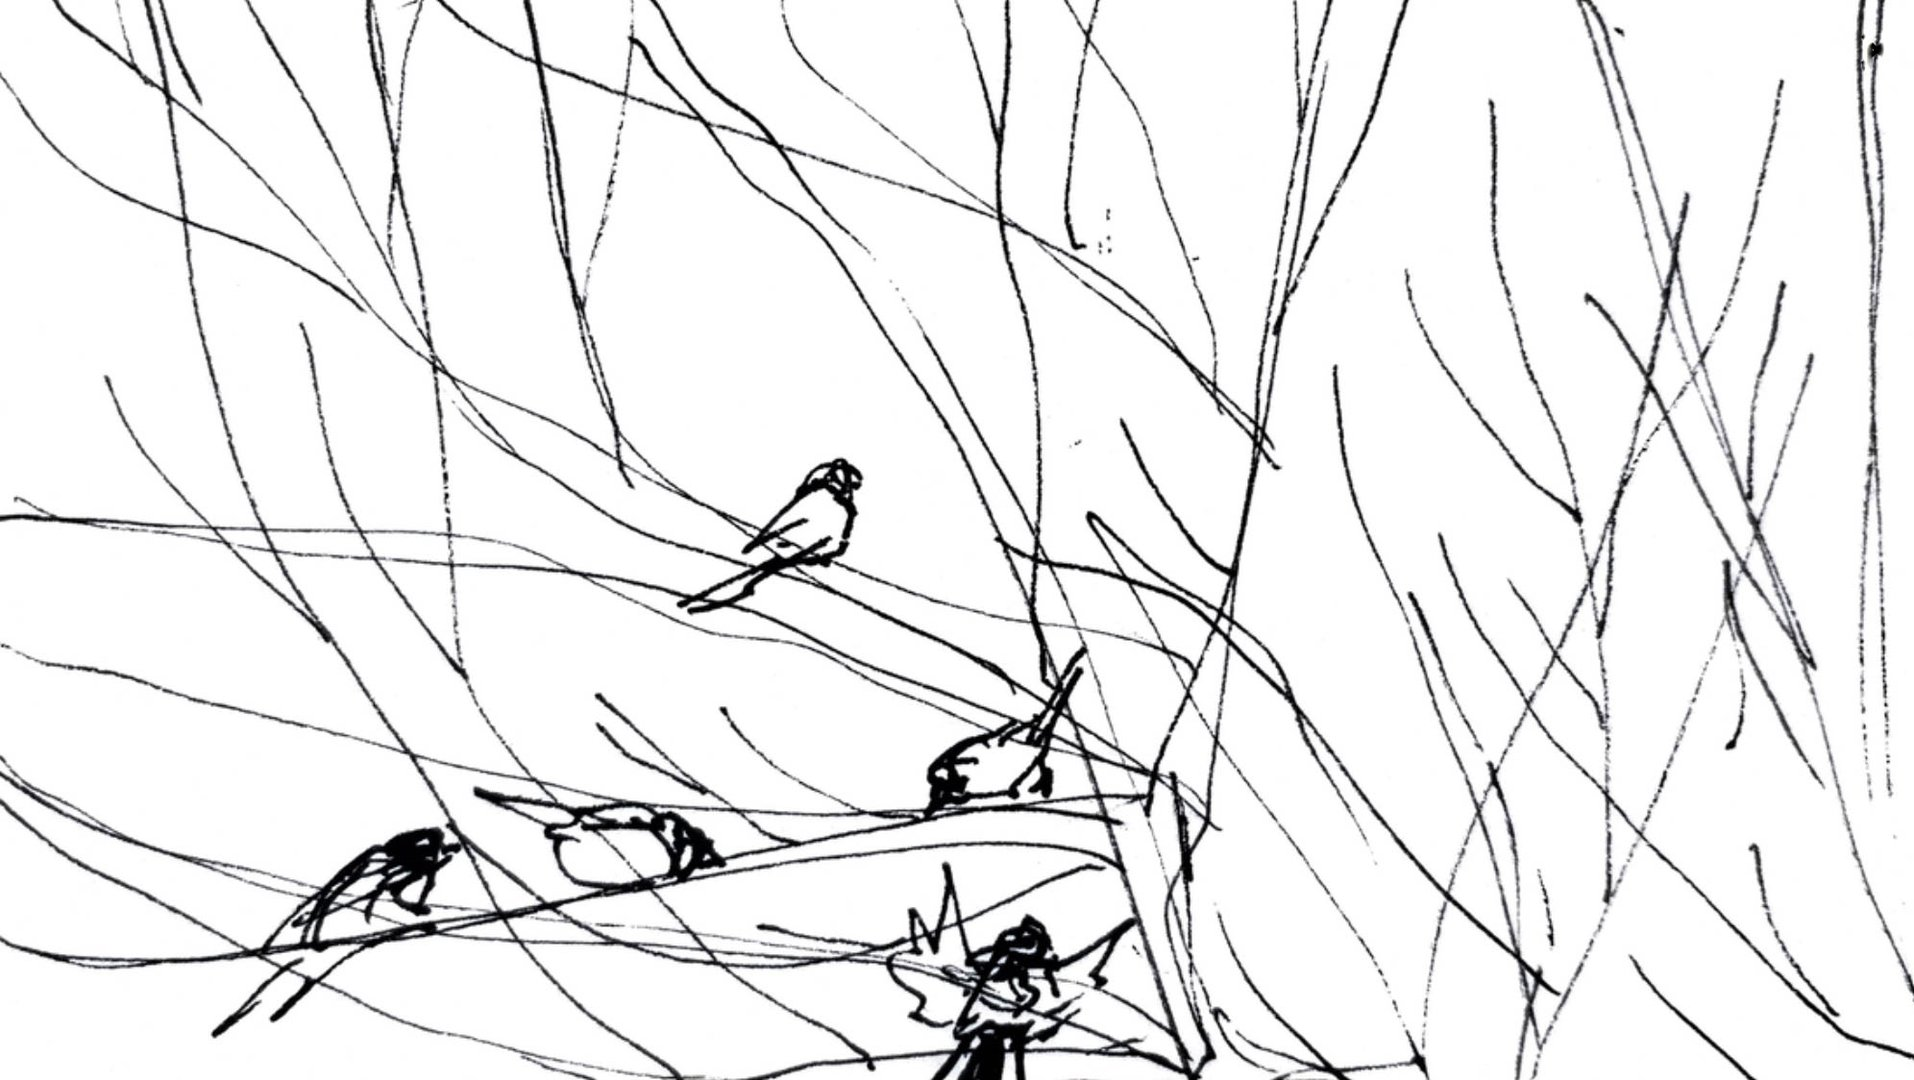 Birds in branches in black on white systems1.jpg